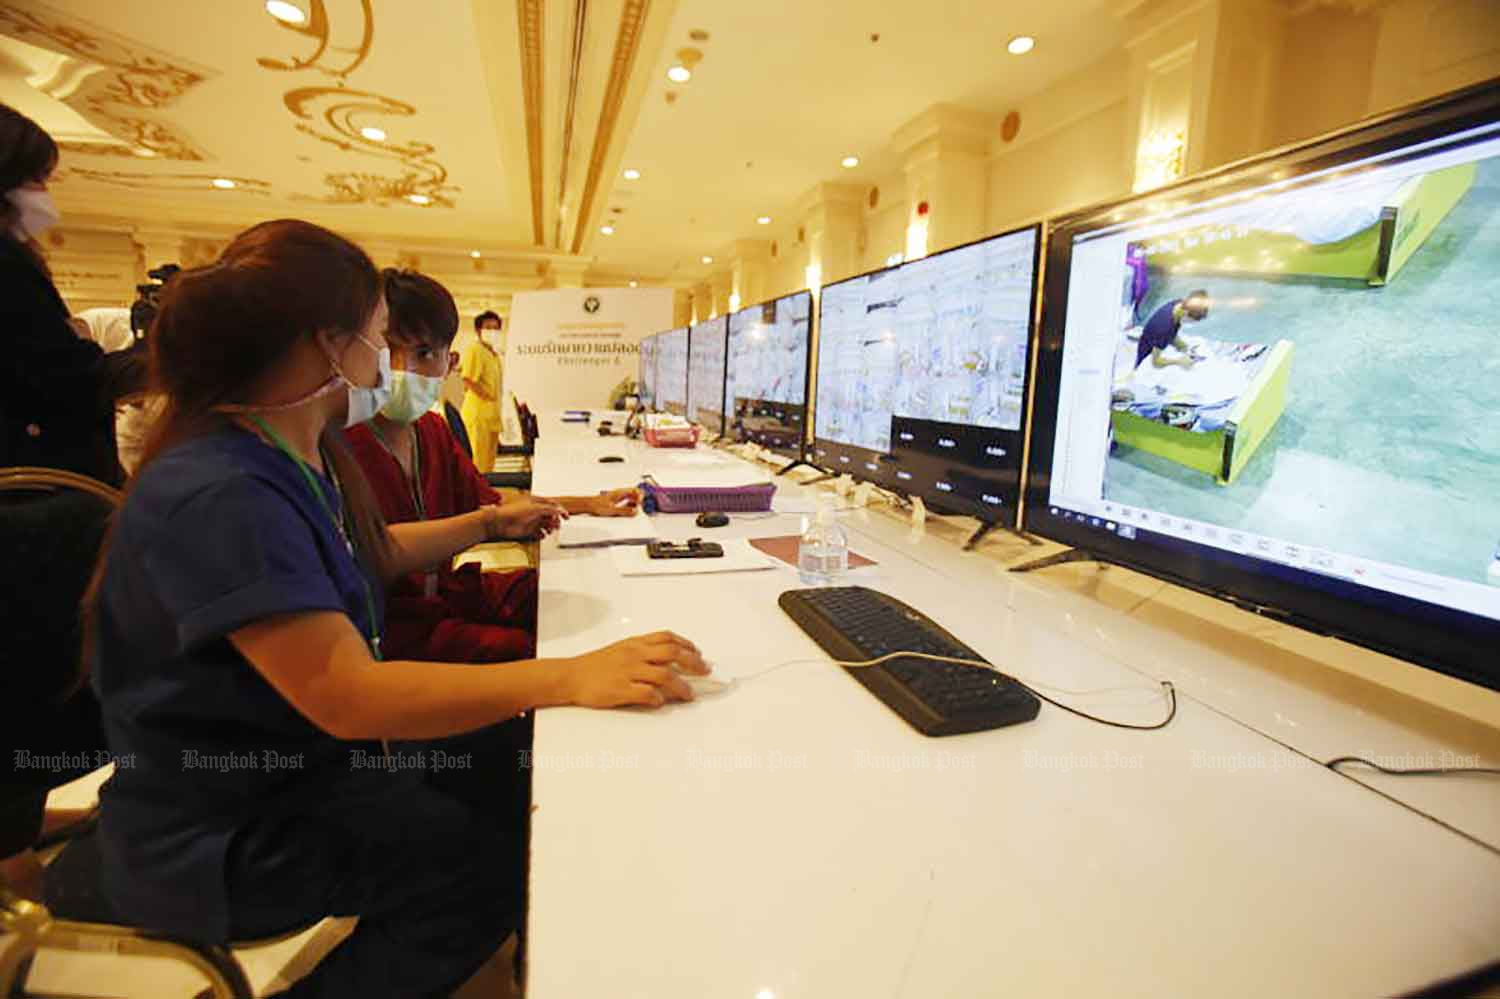 Medical workers monitor the condition of Covid-19 patients through surveillance cameras at the field hospital in the IMPACT convention and exhibition complex in Nonthaburi province on Tuesday. (Photo: Nutthawat Wicheanbut)